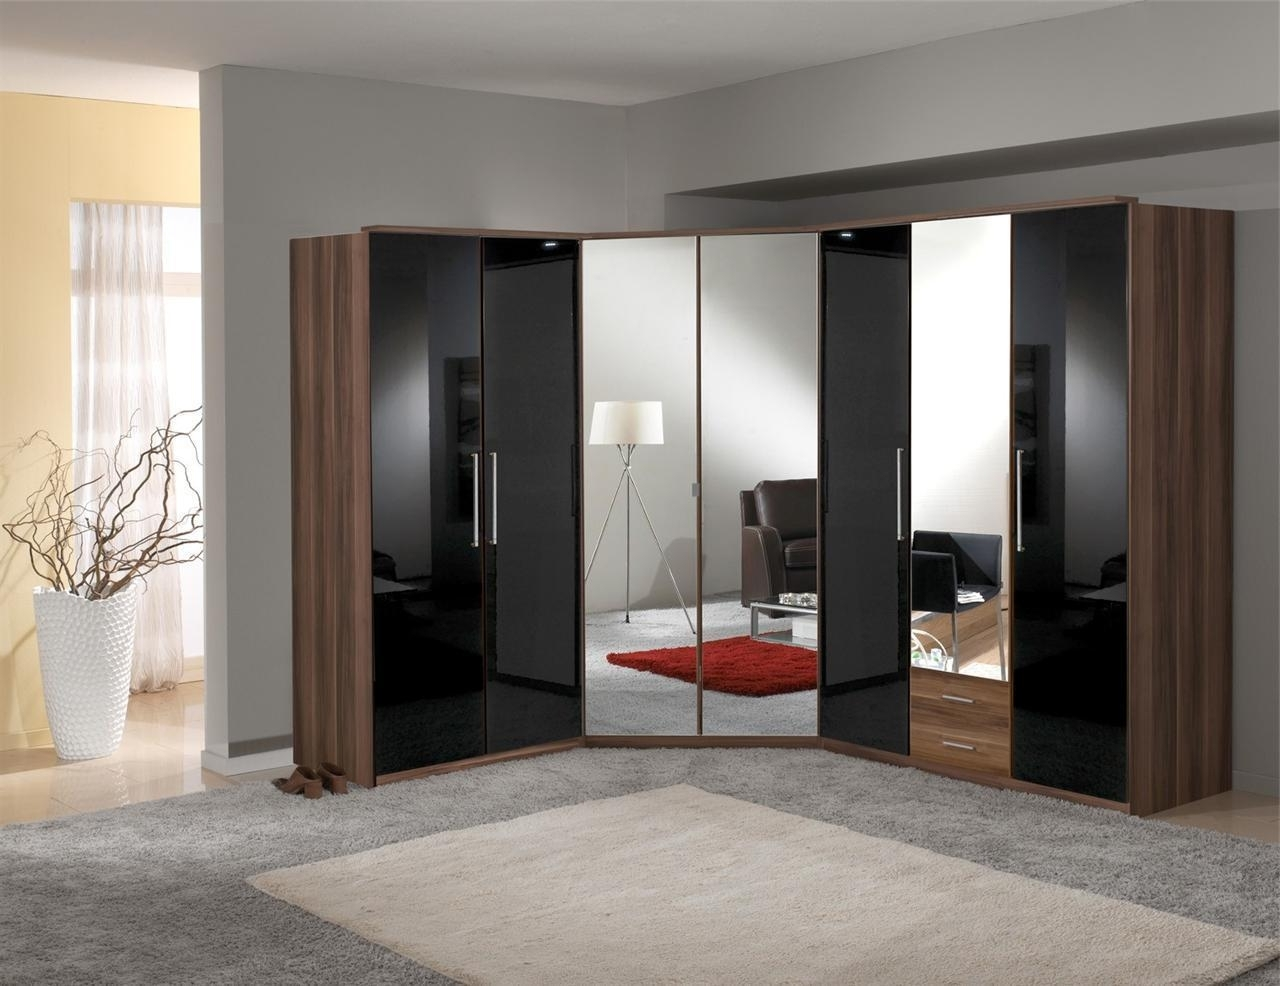 Best Mirrored Corner Wardrobe Deals (View 2 of 15)